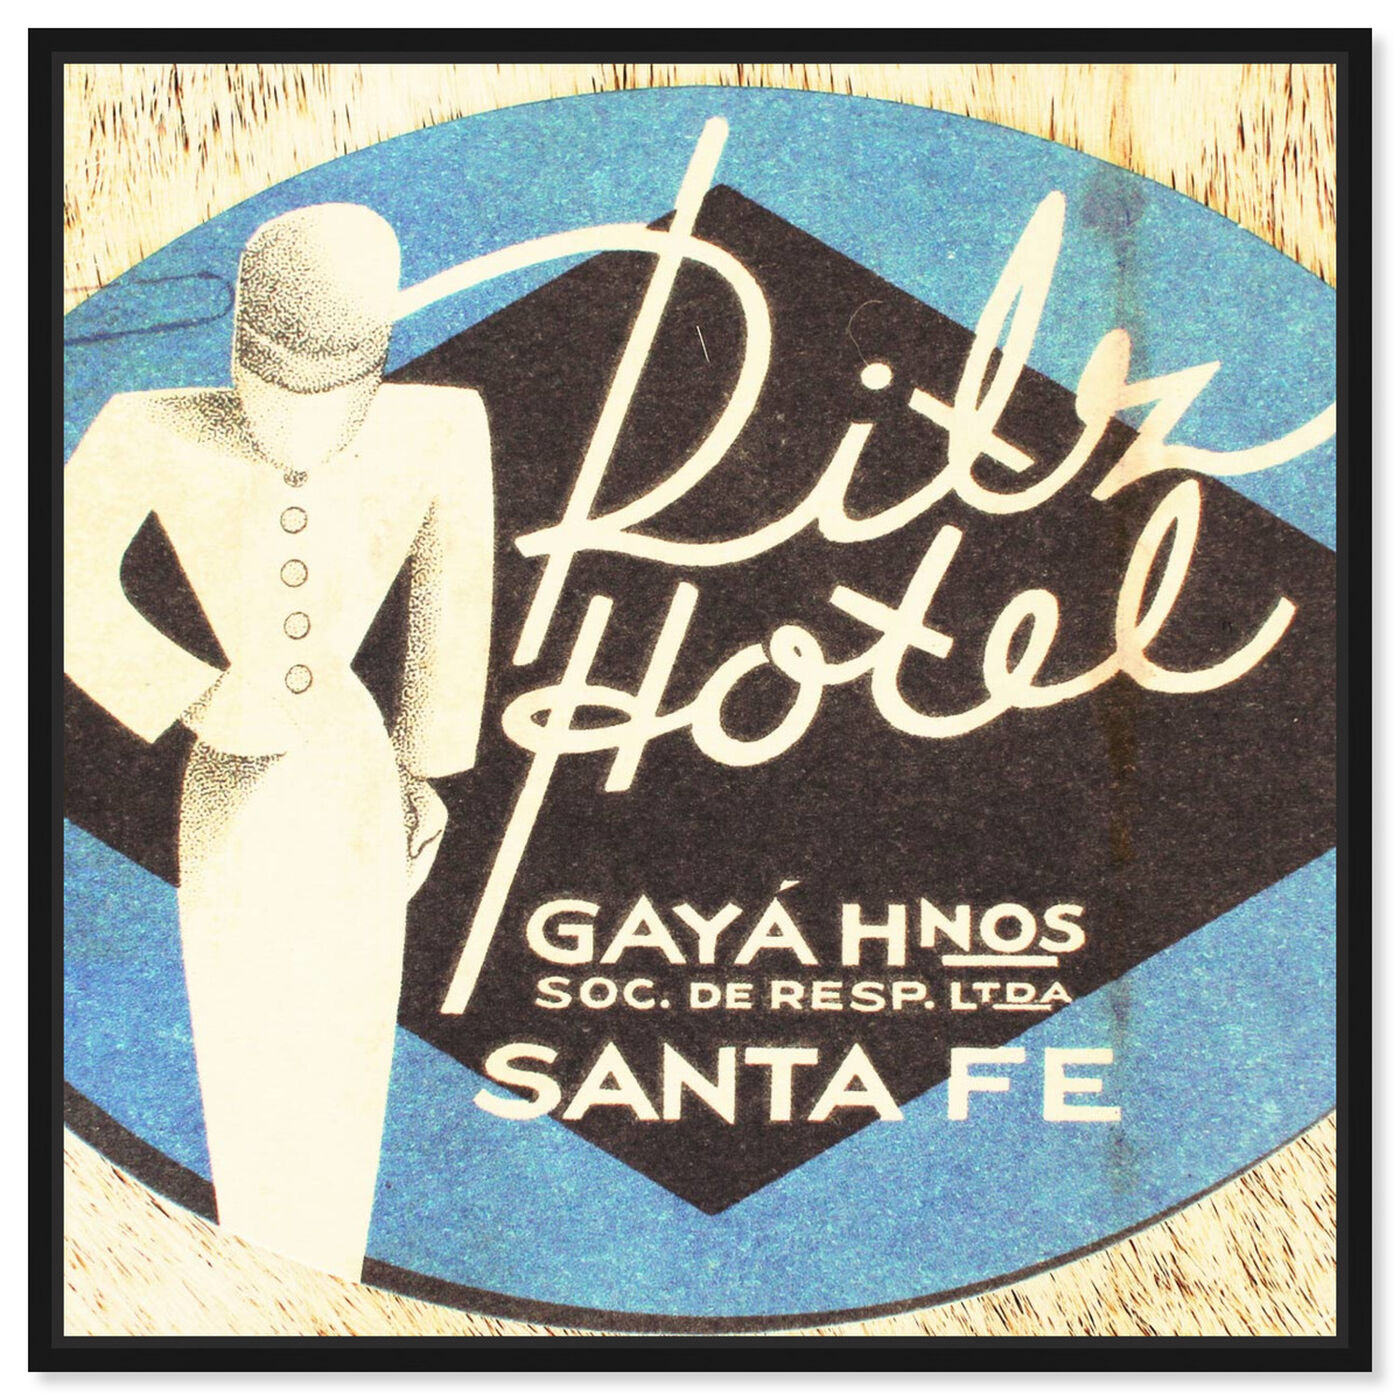 Front view of Ritz Hotel featuring advertising and posters art.